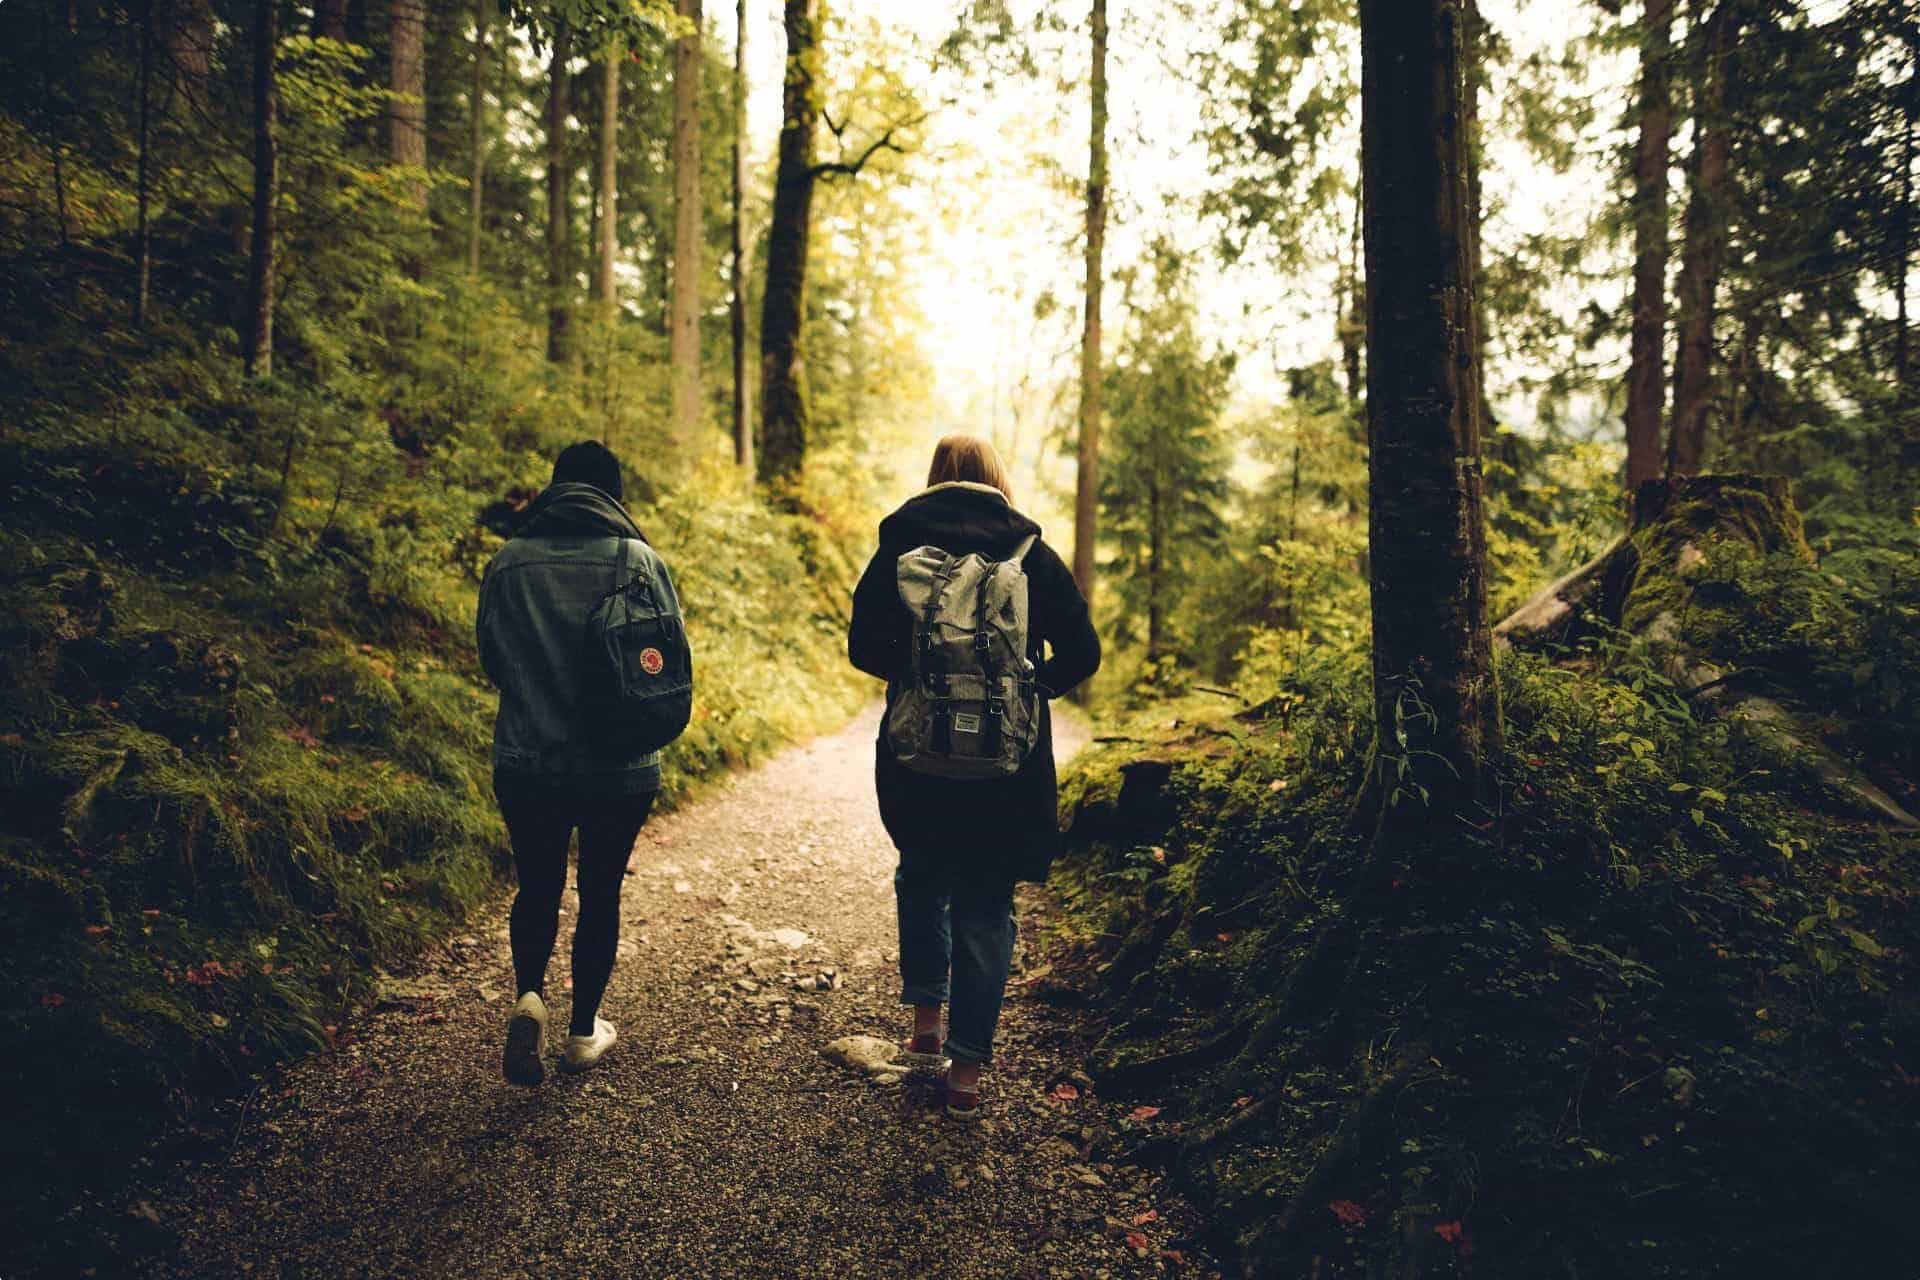 Committing to a fitness goal in advance will make the walking holiday much more enjoyable.